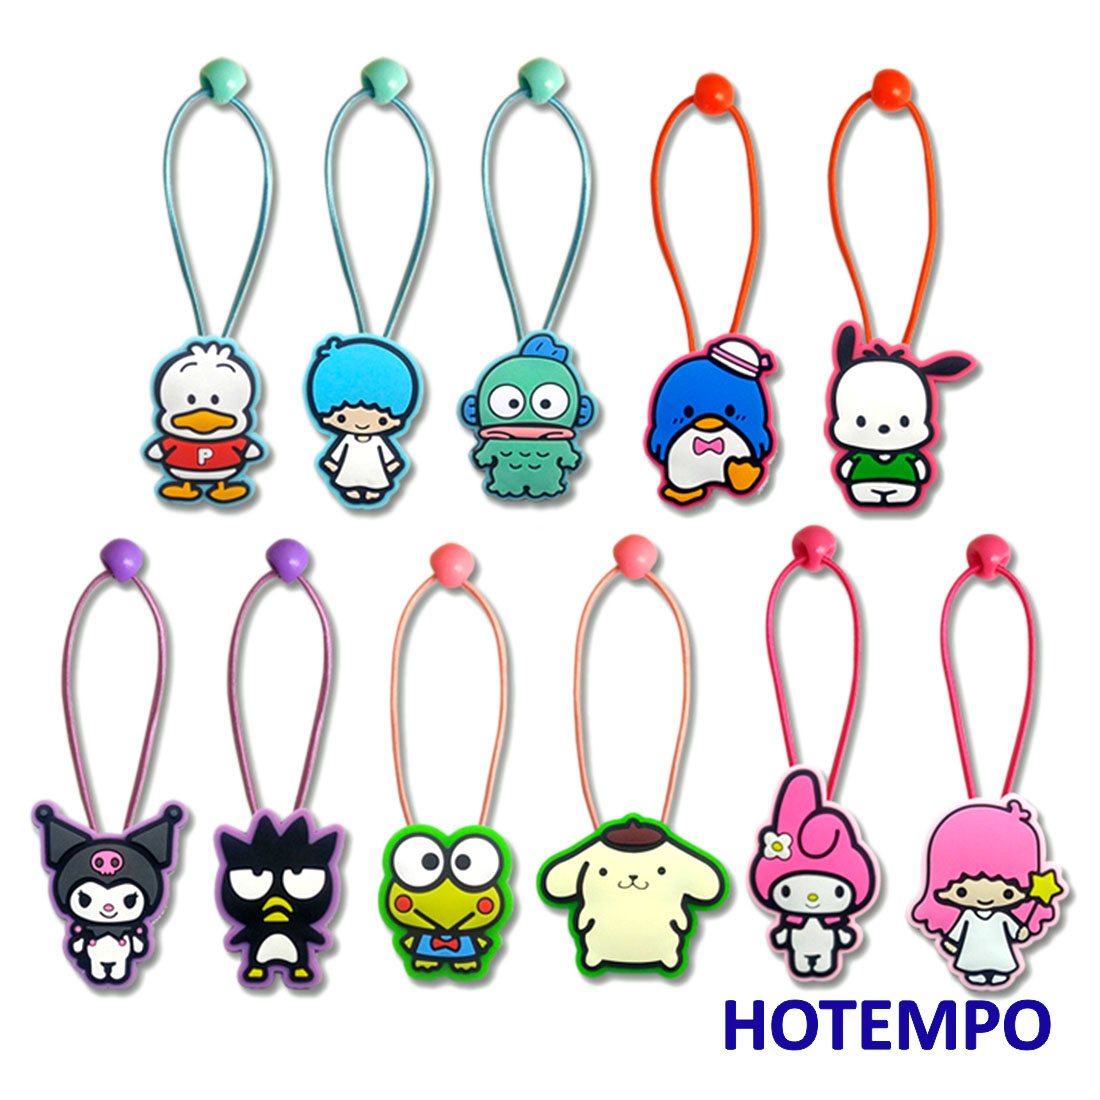 Cute Cartoon Pochacco Pekkle Maru Keroppi Kuromi Melody Twinstars Japan Kawaii Girls Elastic Hair Bands Hair Ring For Girls Gift